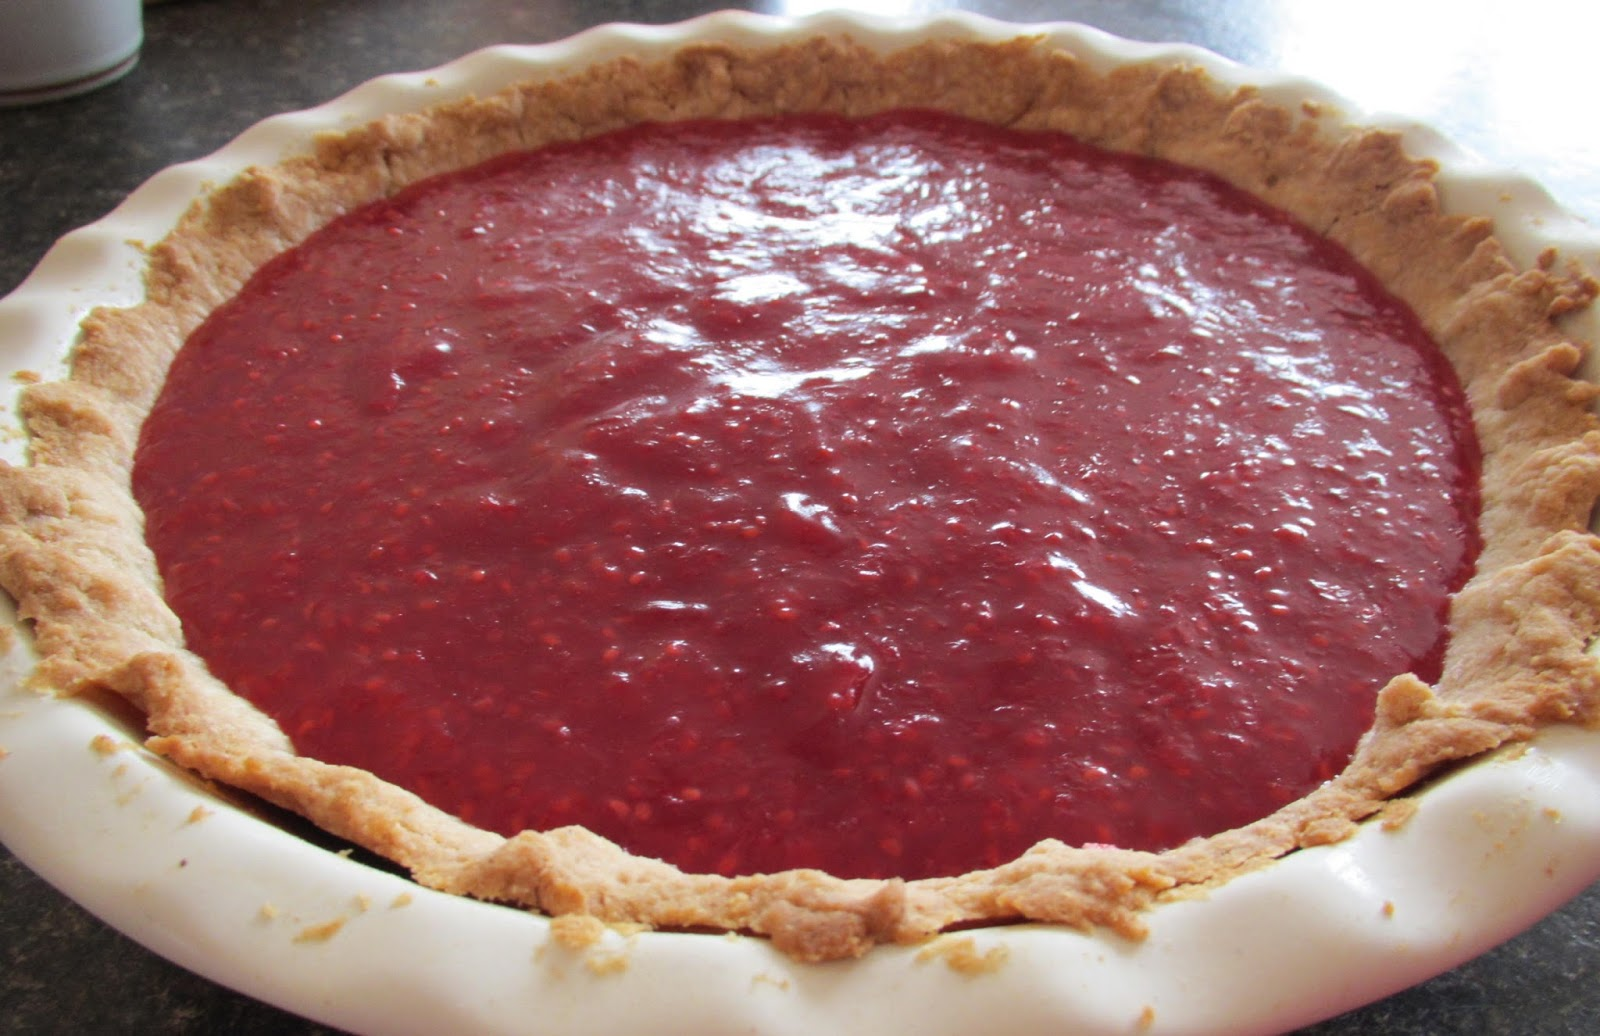 Successfully Gluten Free! : Raspberry Cream Cheese Pie